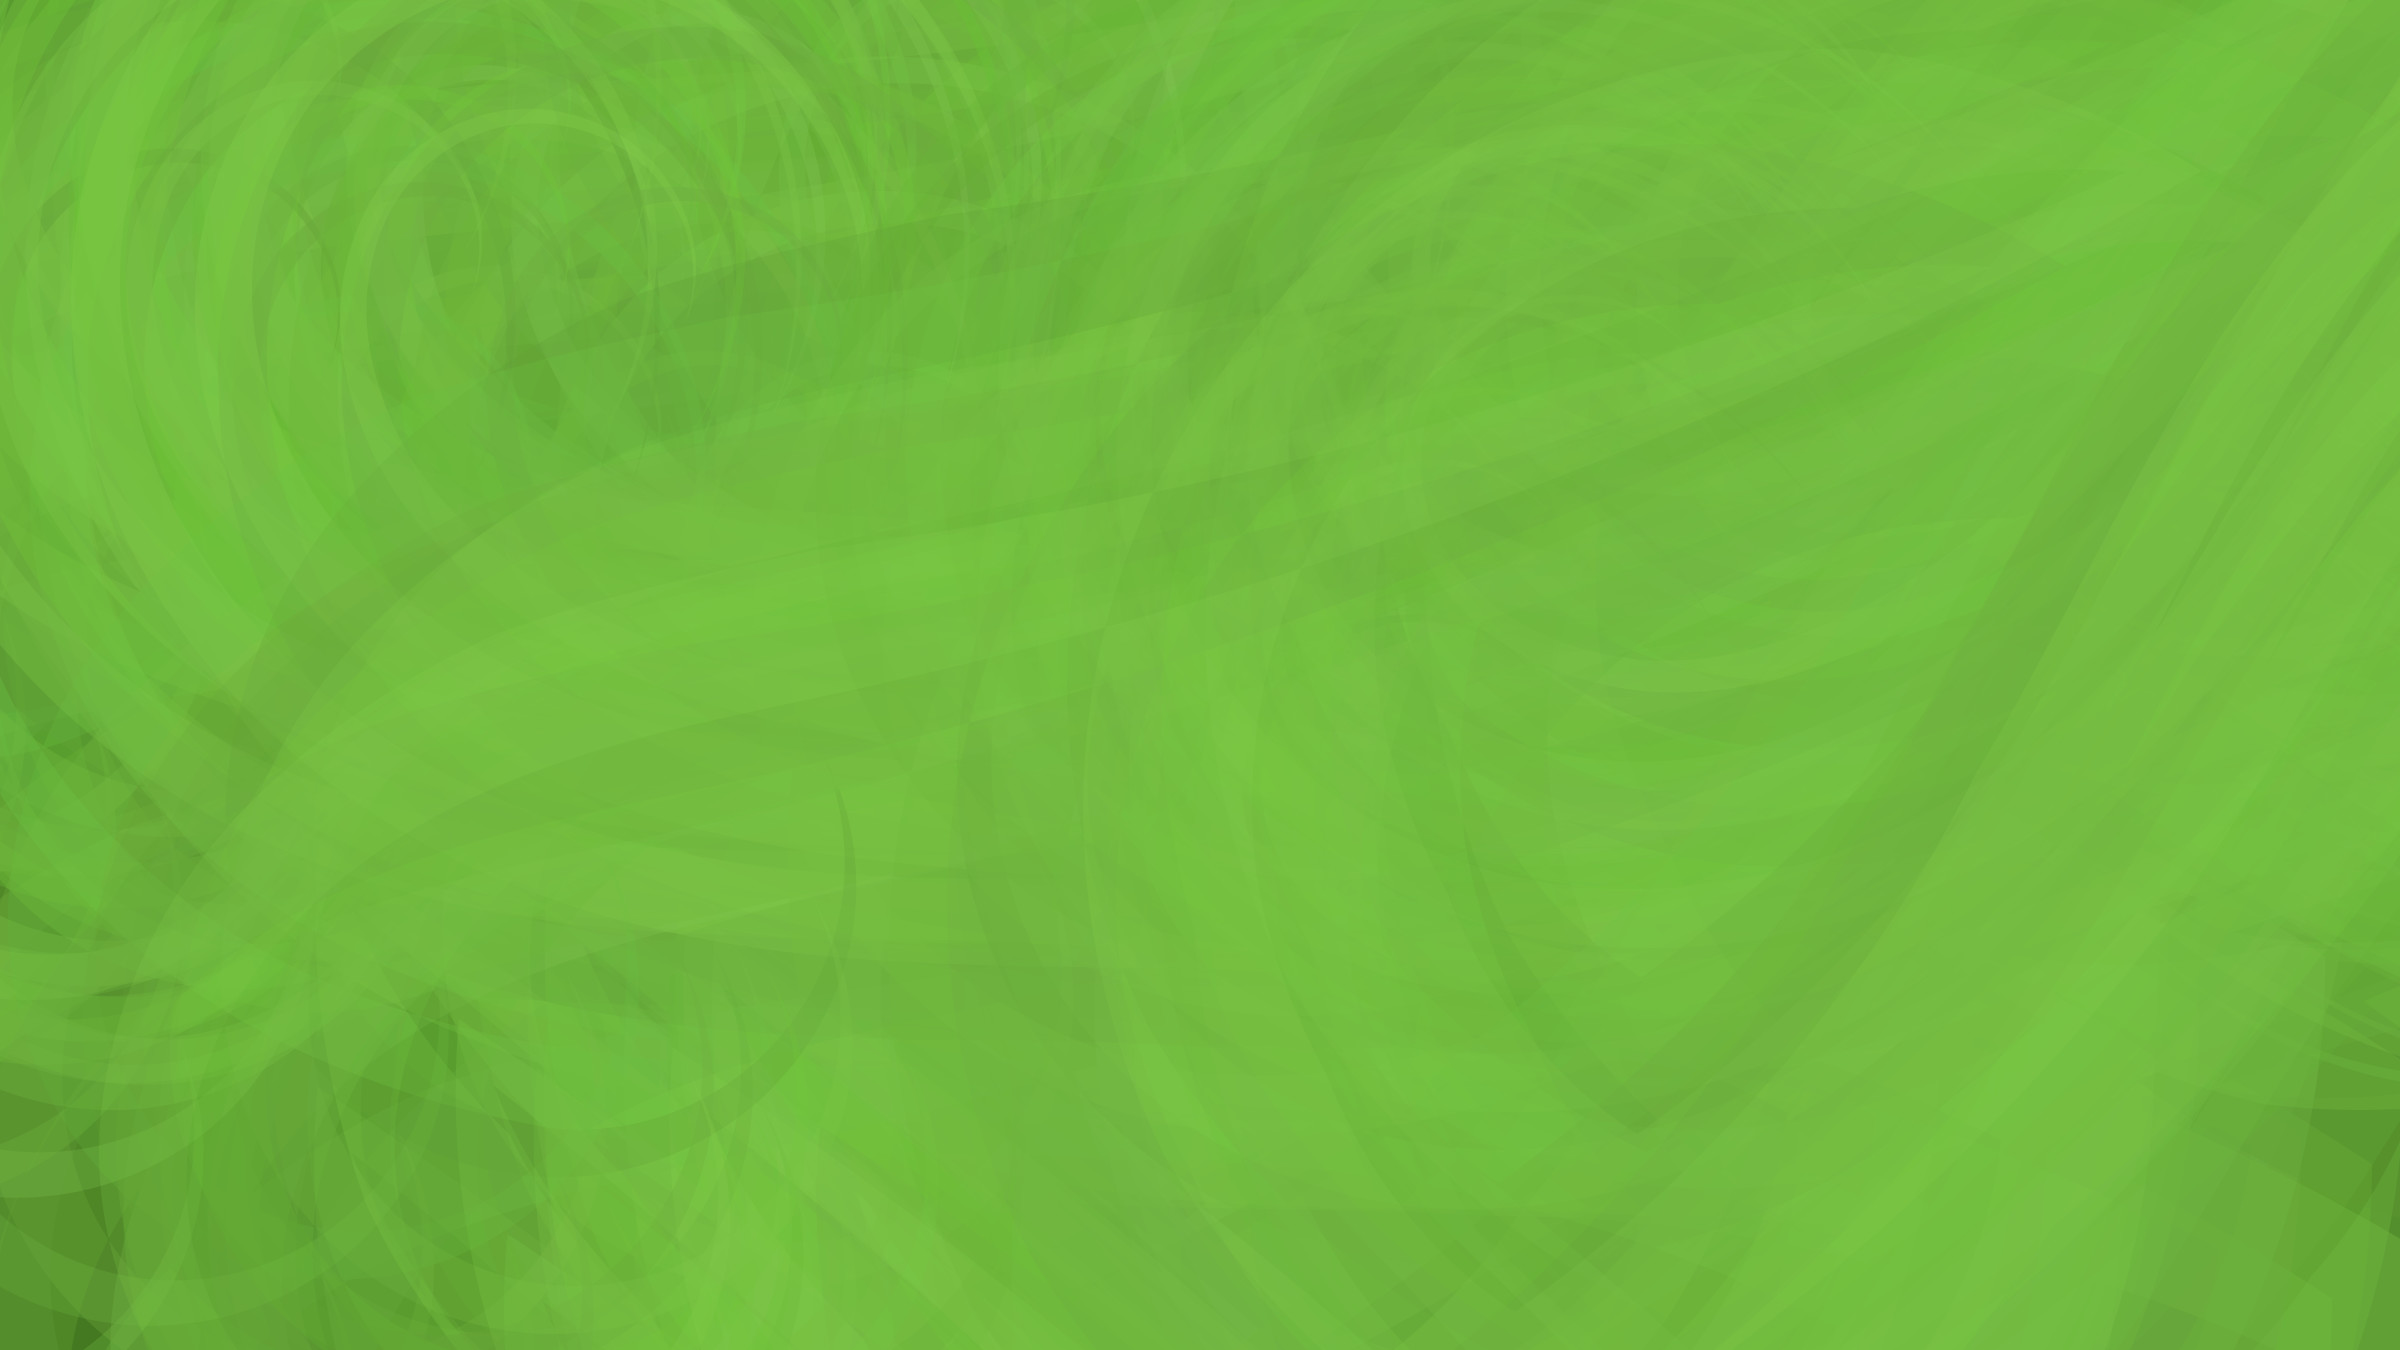 2400x1350 Soft feathered green background